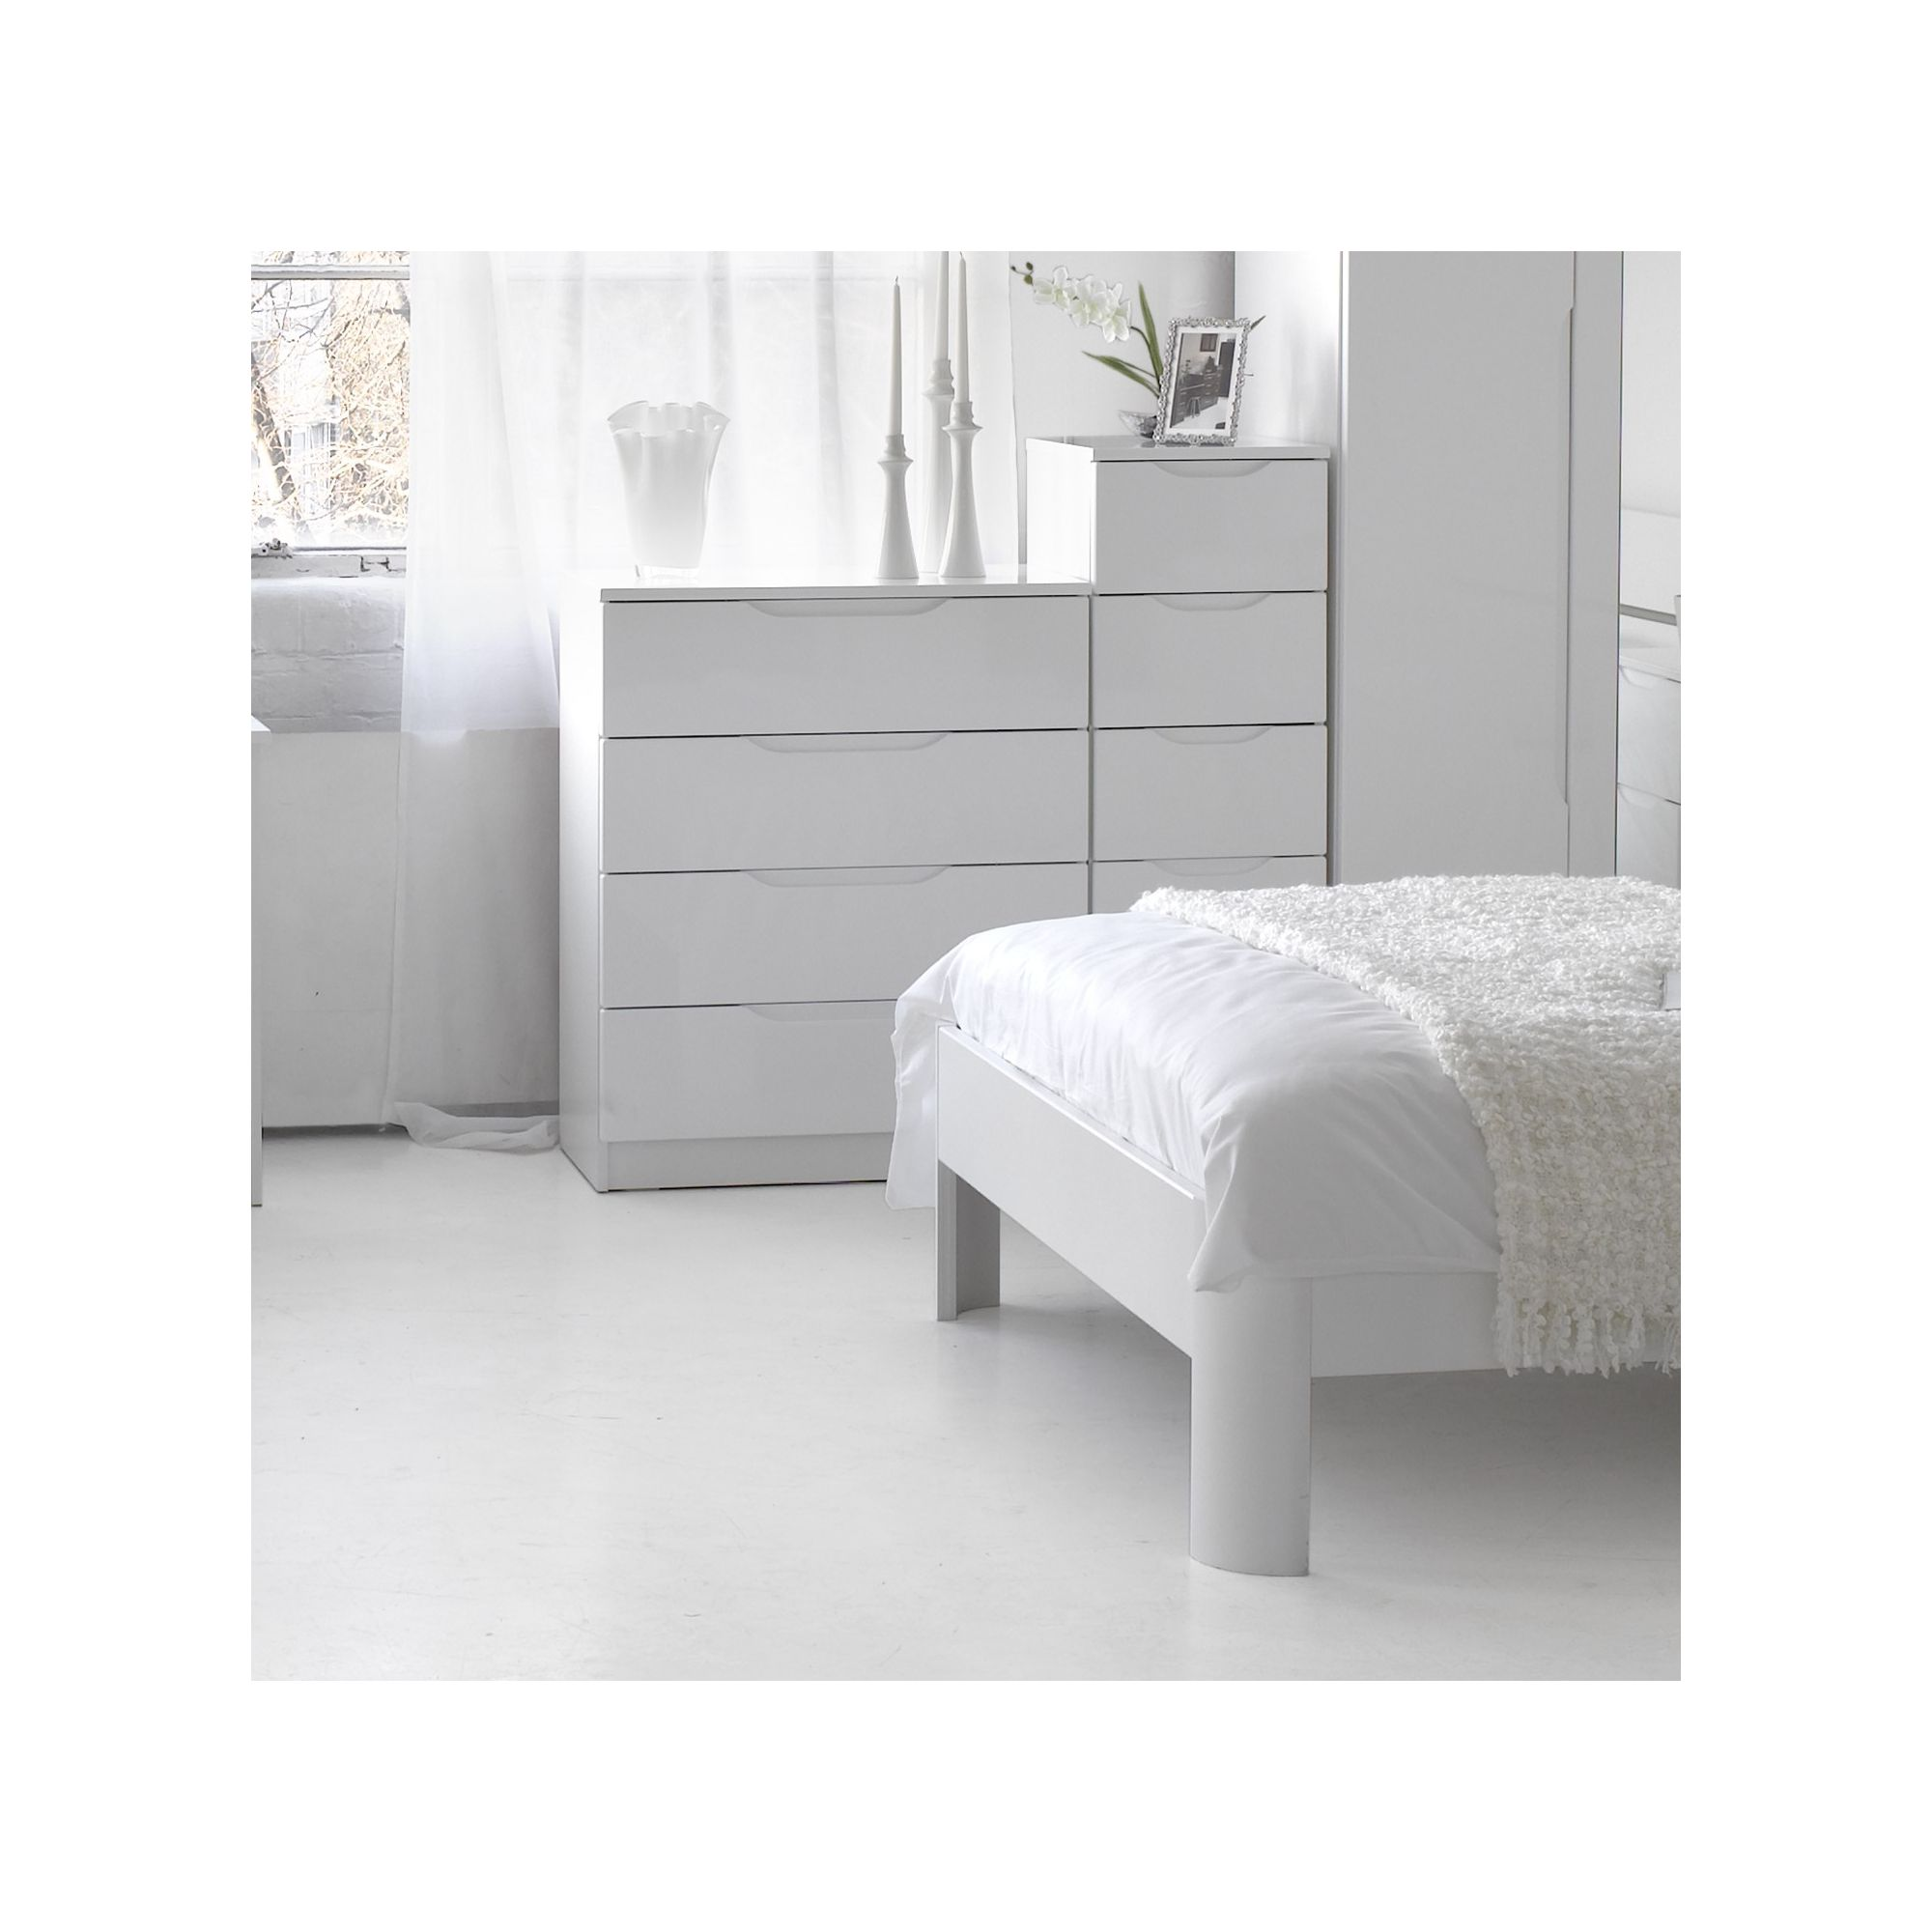 Alto Furniture Visualise Alpine Four Drawer Chest - White at Tescos Direct